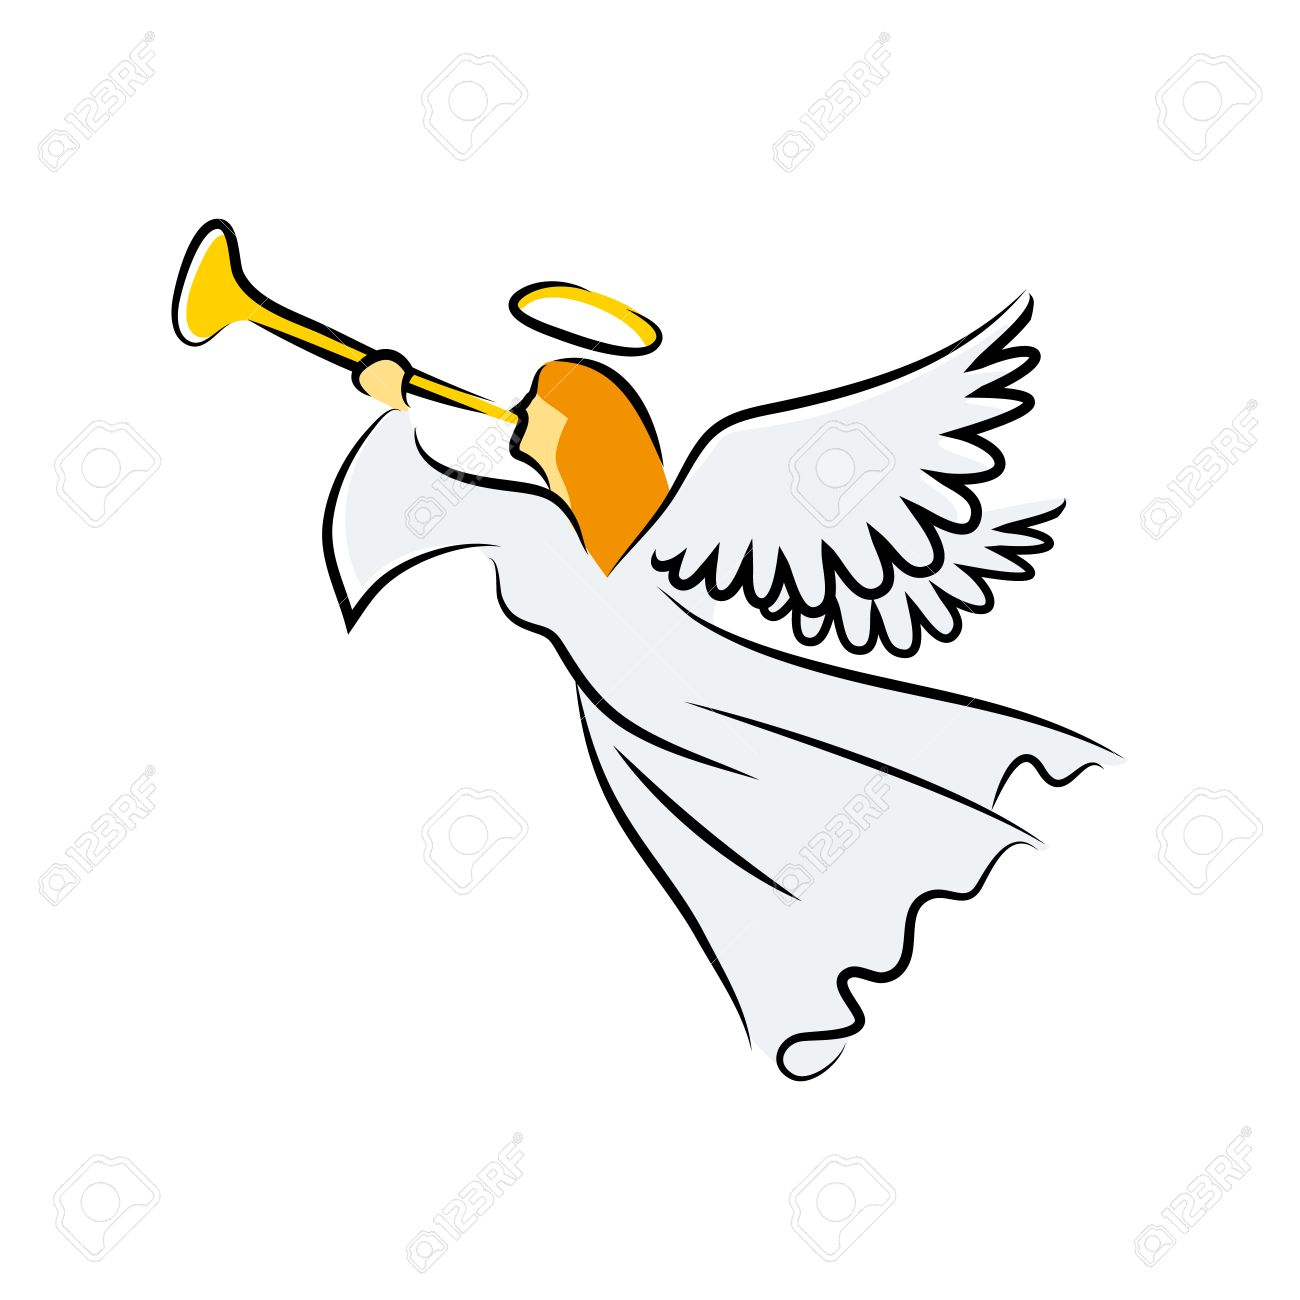 angel blowing the trumpet.